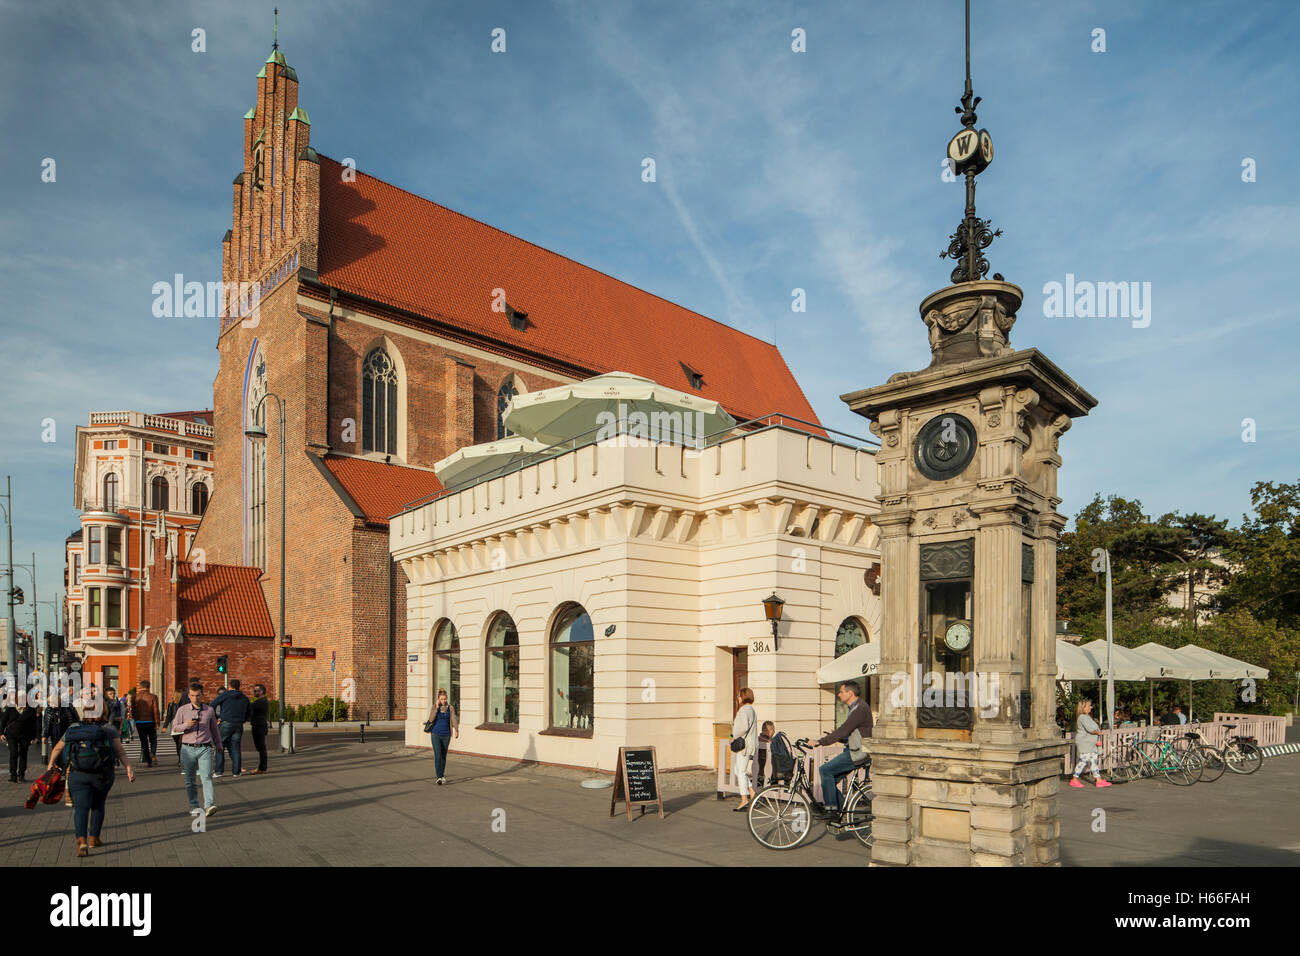 Corpus Christi church in Wroclaw, Poland. - Stock Image